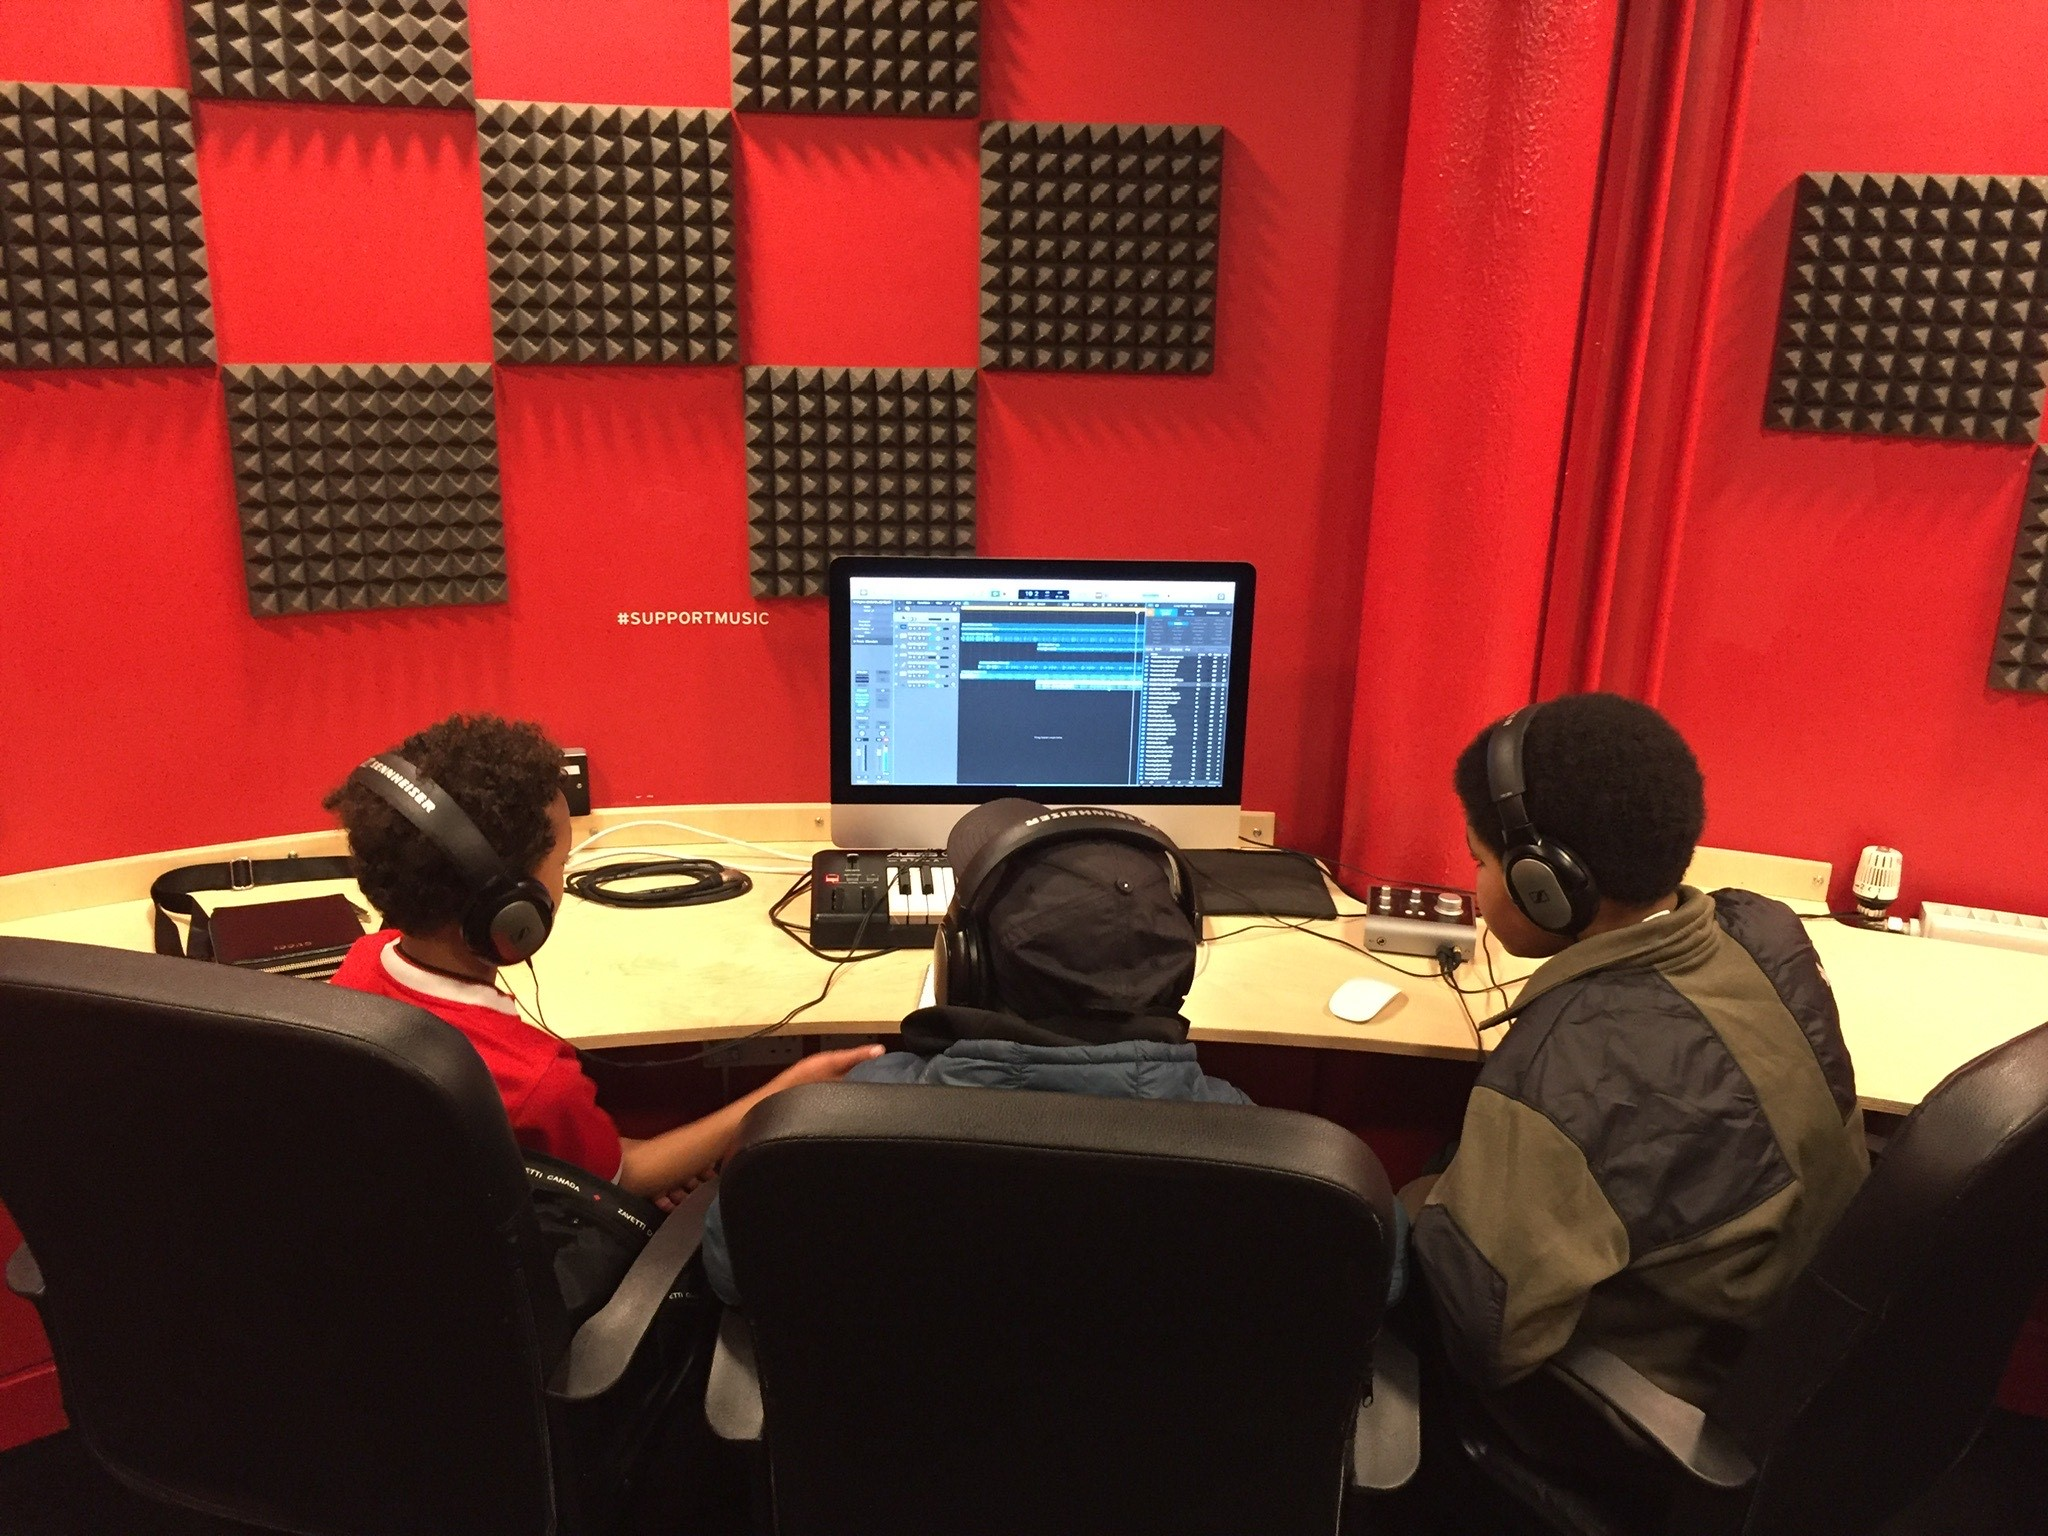 Photo of three boys sat in front of a mac desktop computer. There is a red and black check patterned wall in the background